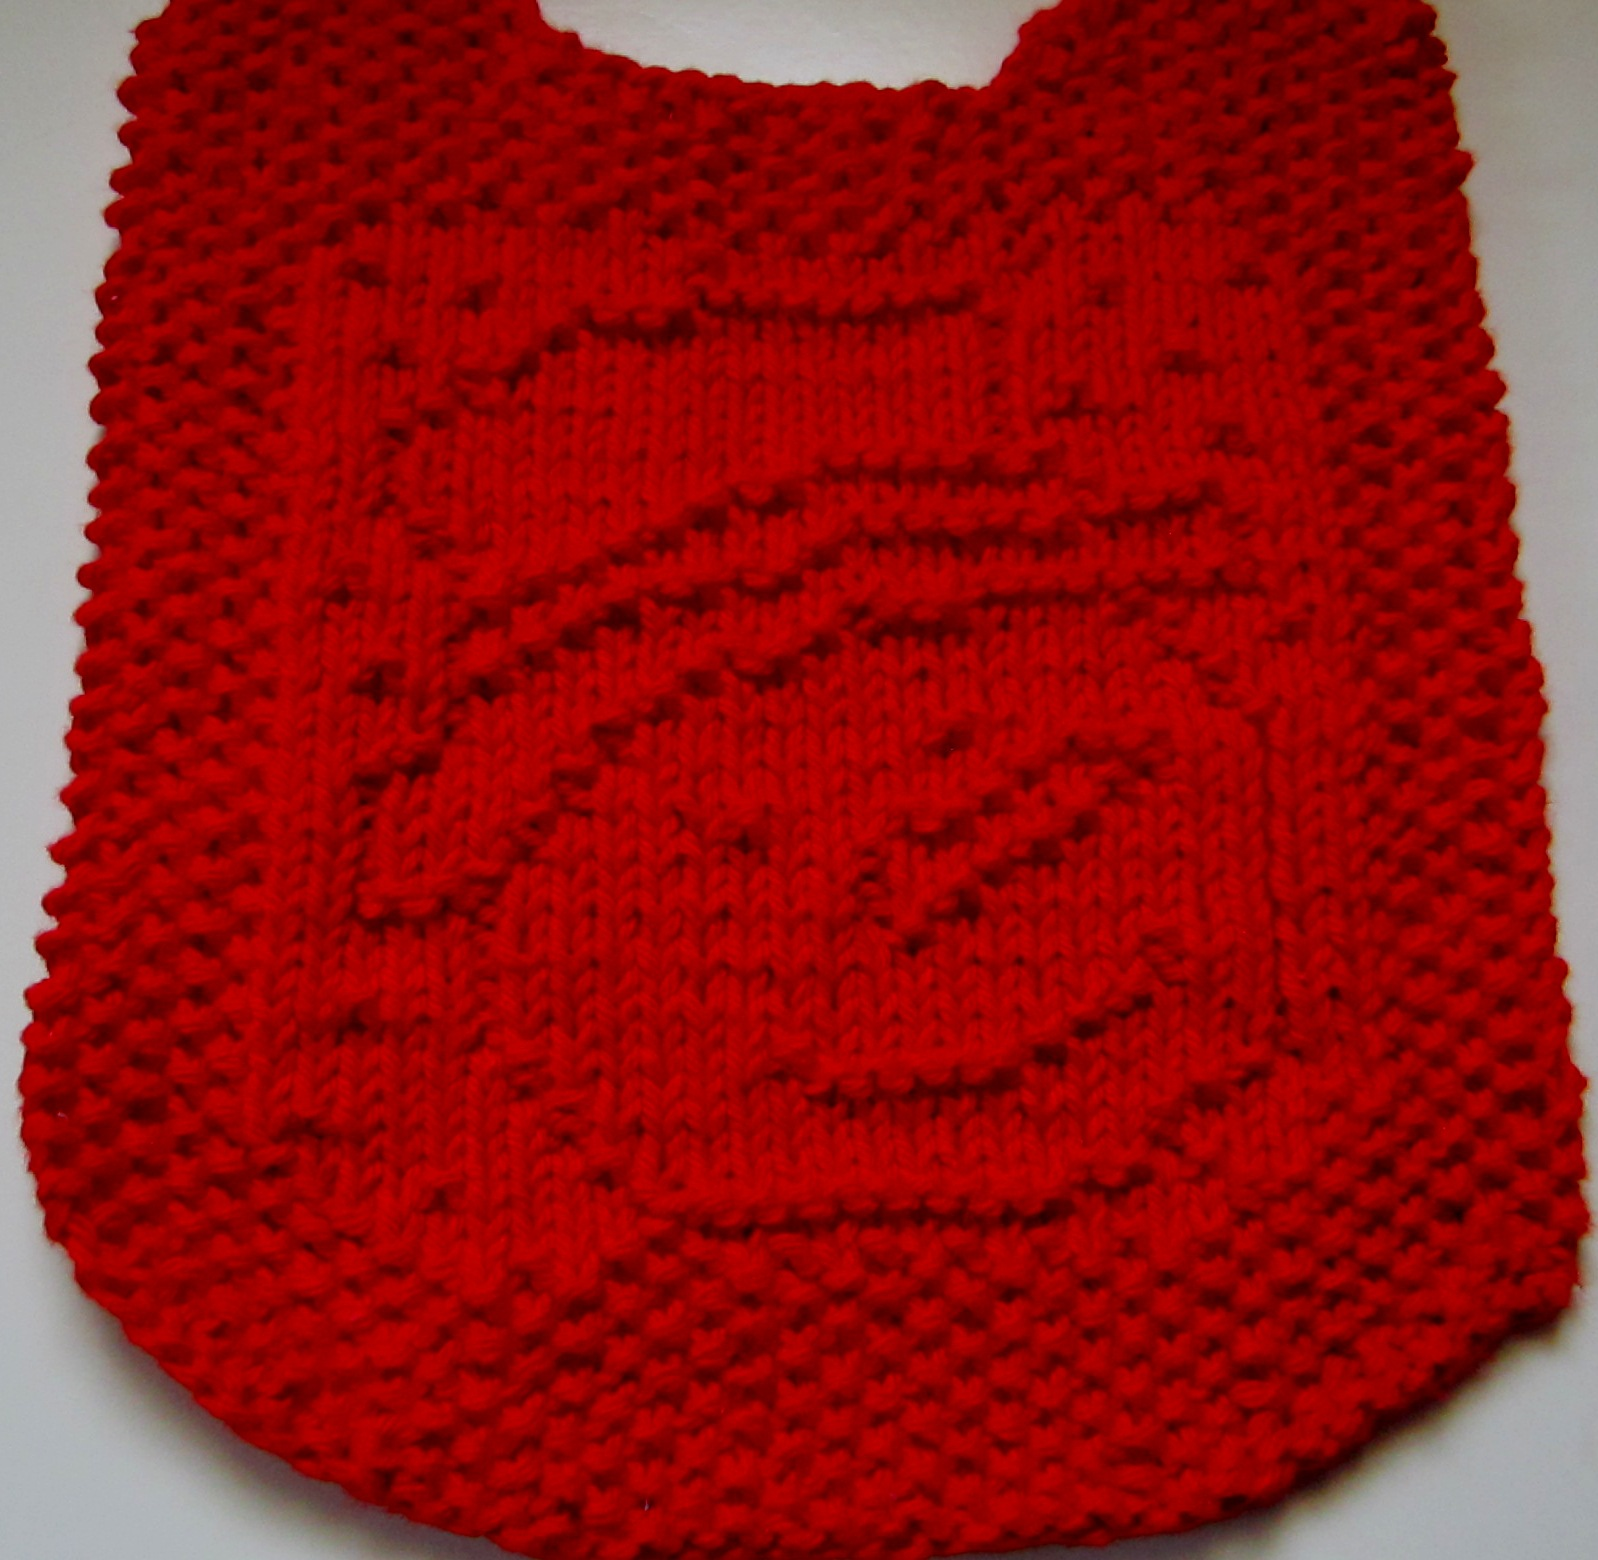 ffbad3abc Denise knit the blue bib pictured above. I knit it in red